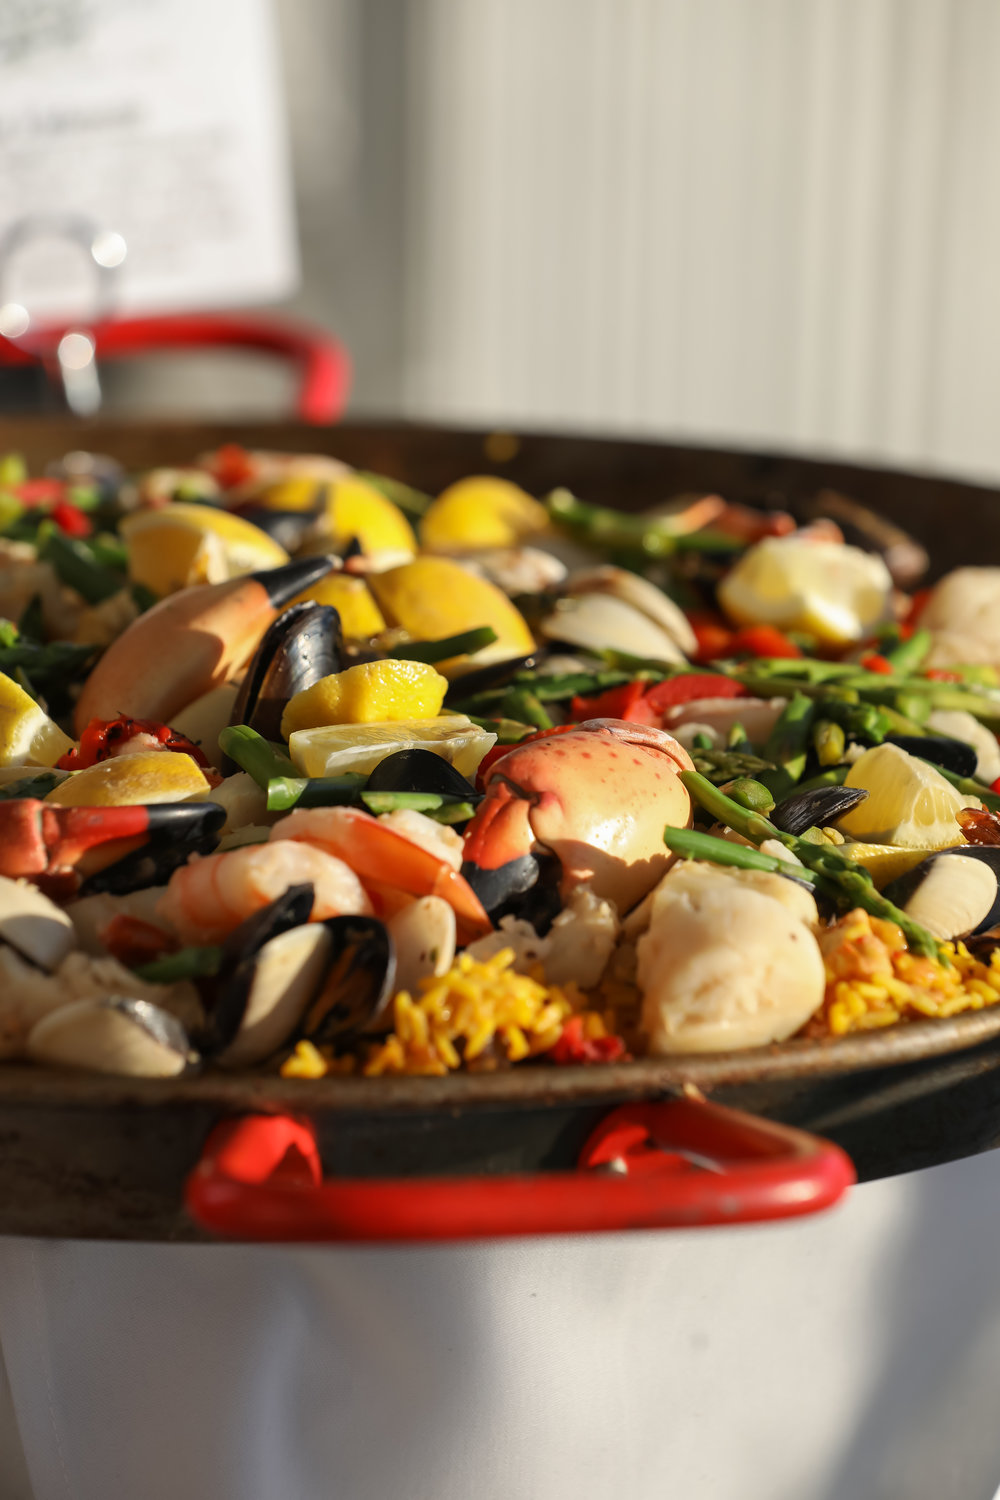 Guests enjoyed Floridian cuisine including grilled oysters in the halfshell, cedar plank salmon, and a giant seafood paella station.